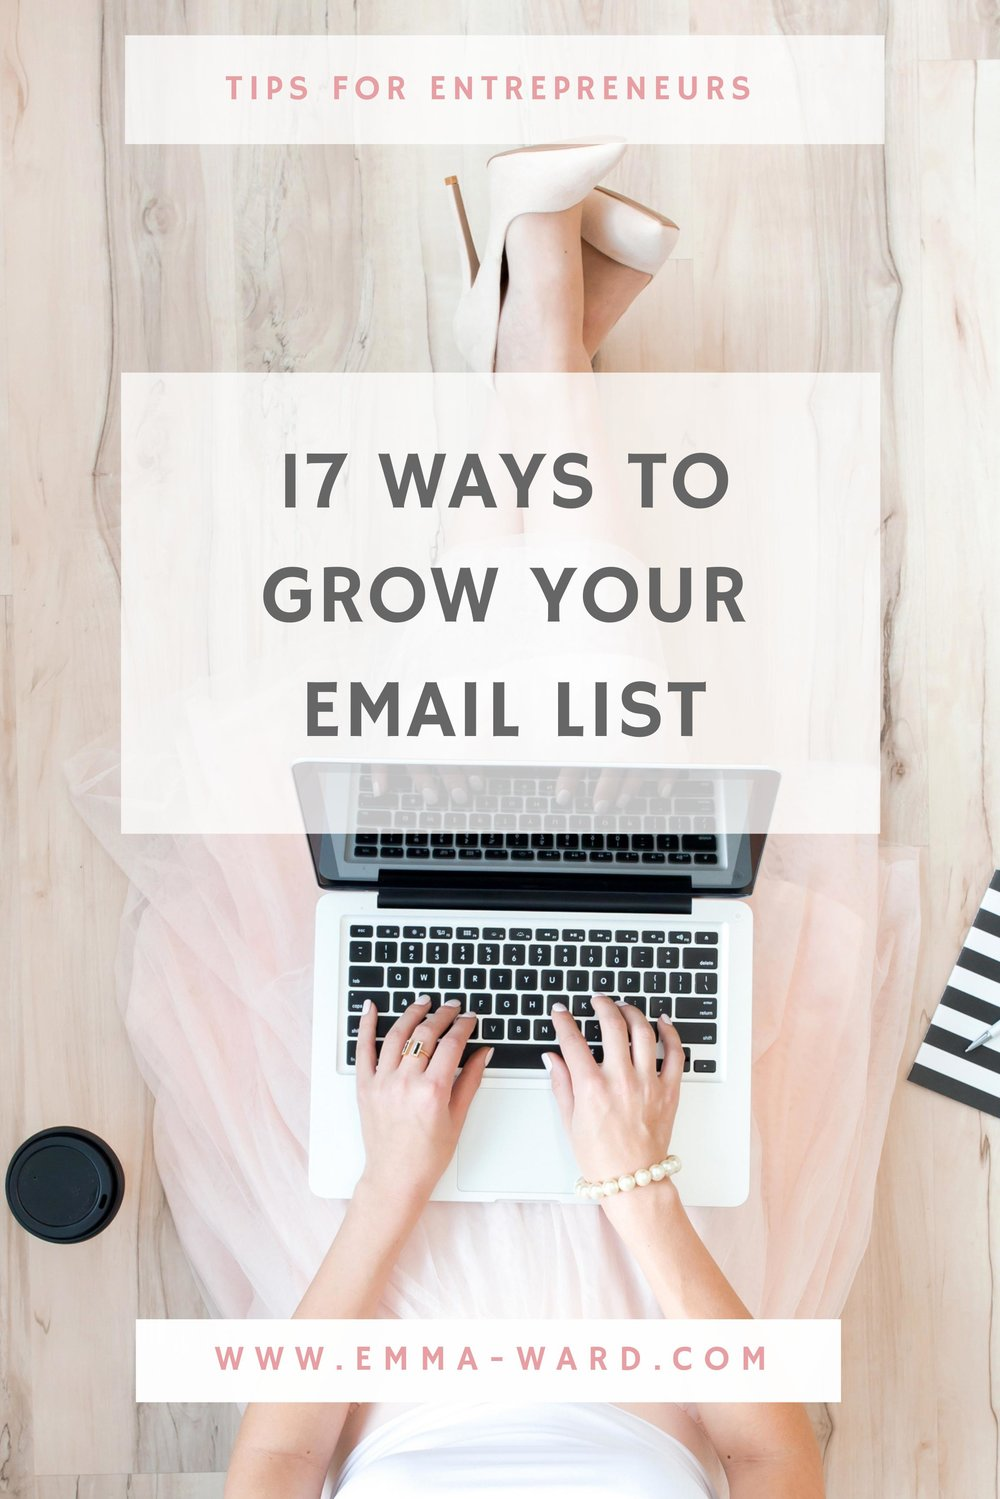 17 ways to grow your email list.jpg